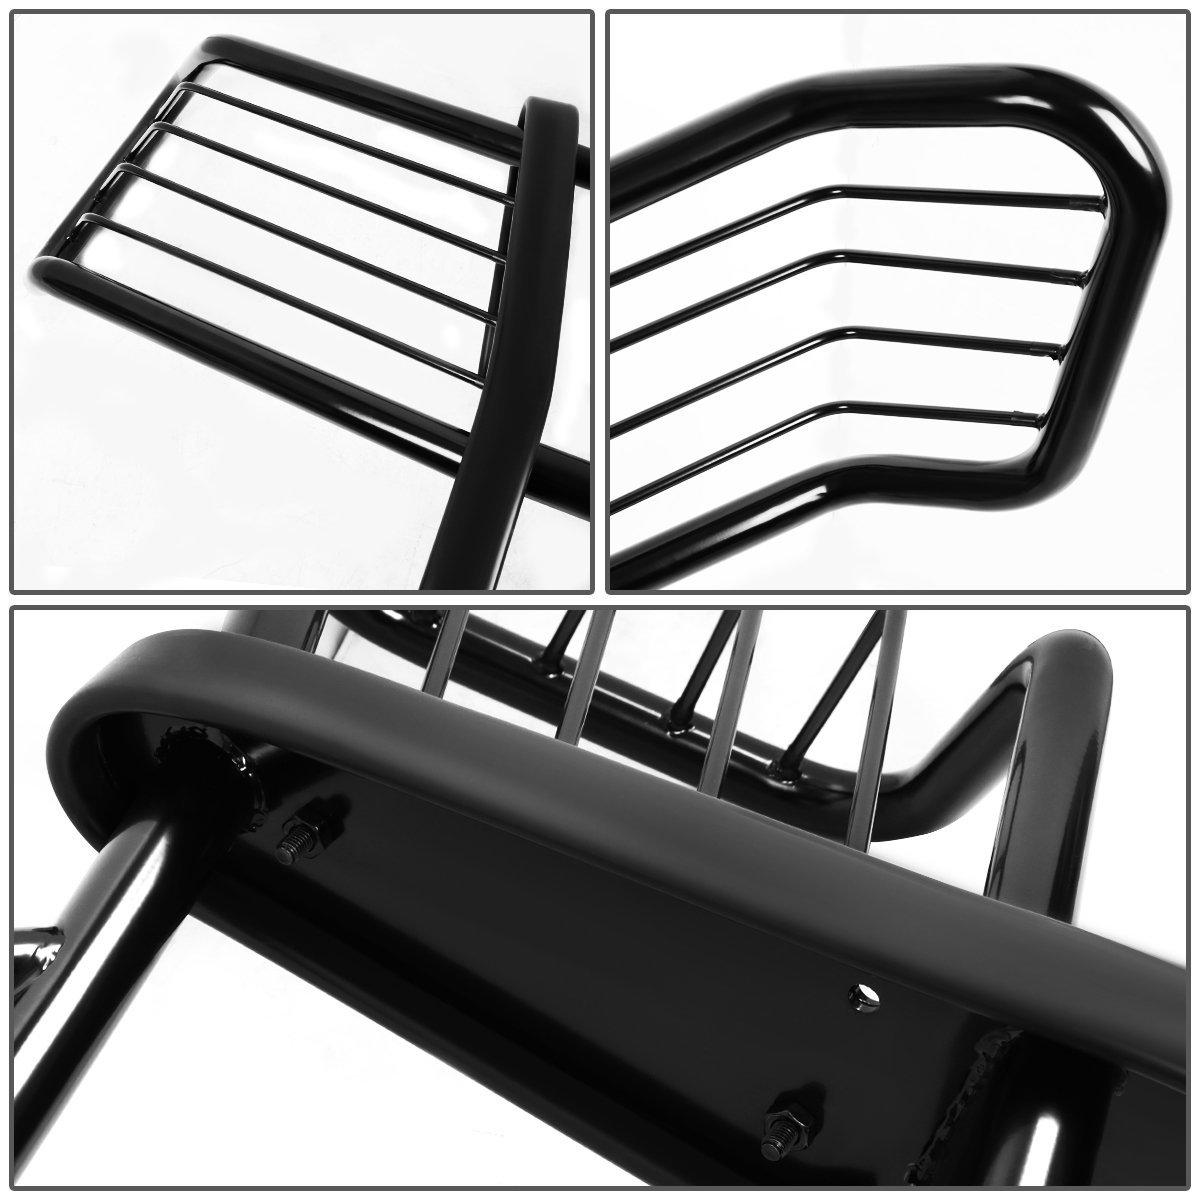 Black For Chevy Avalanche with Cladding Front Bumper Protector Brush Grille Guard